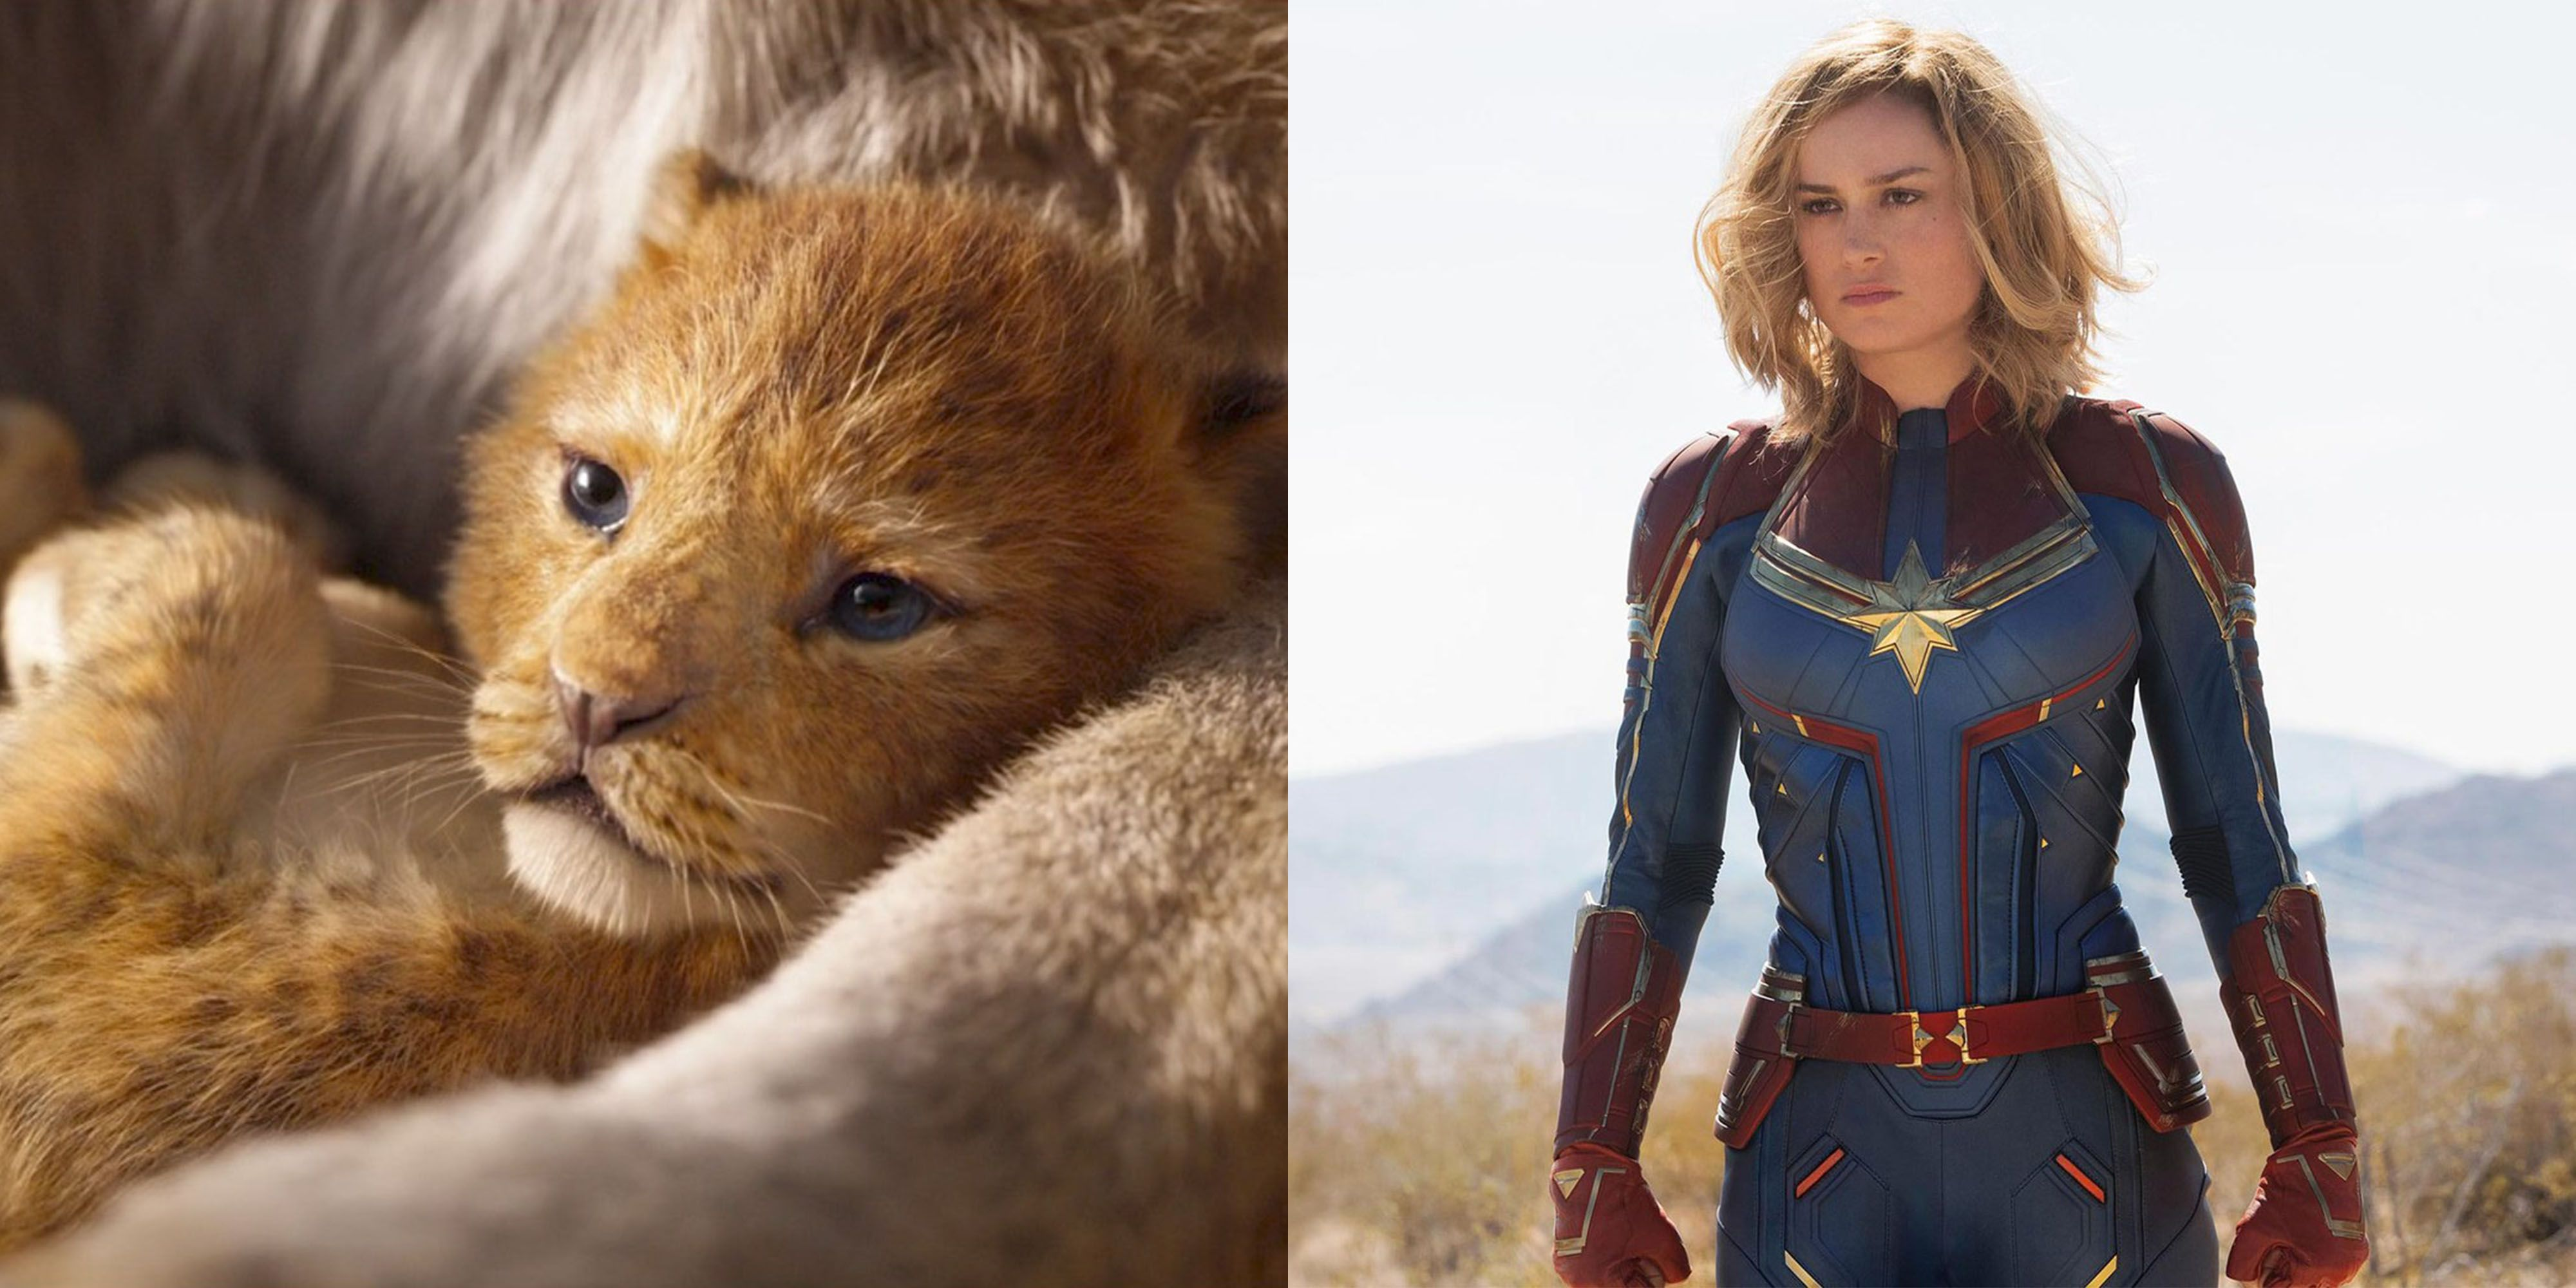 21 Most Anticipated Movies of 2019 - Top New Films With ...